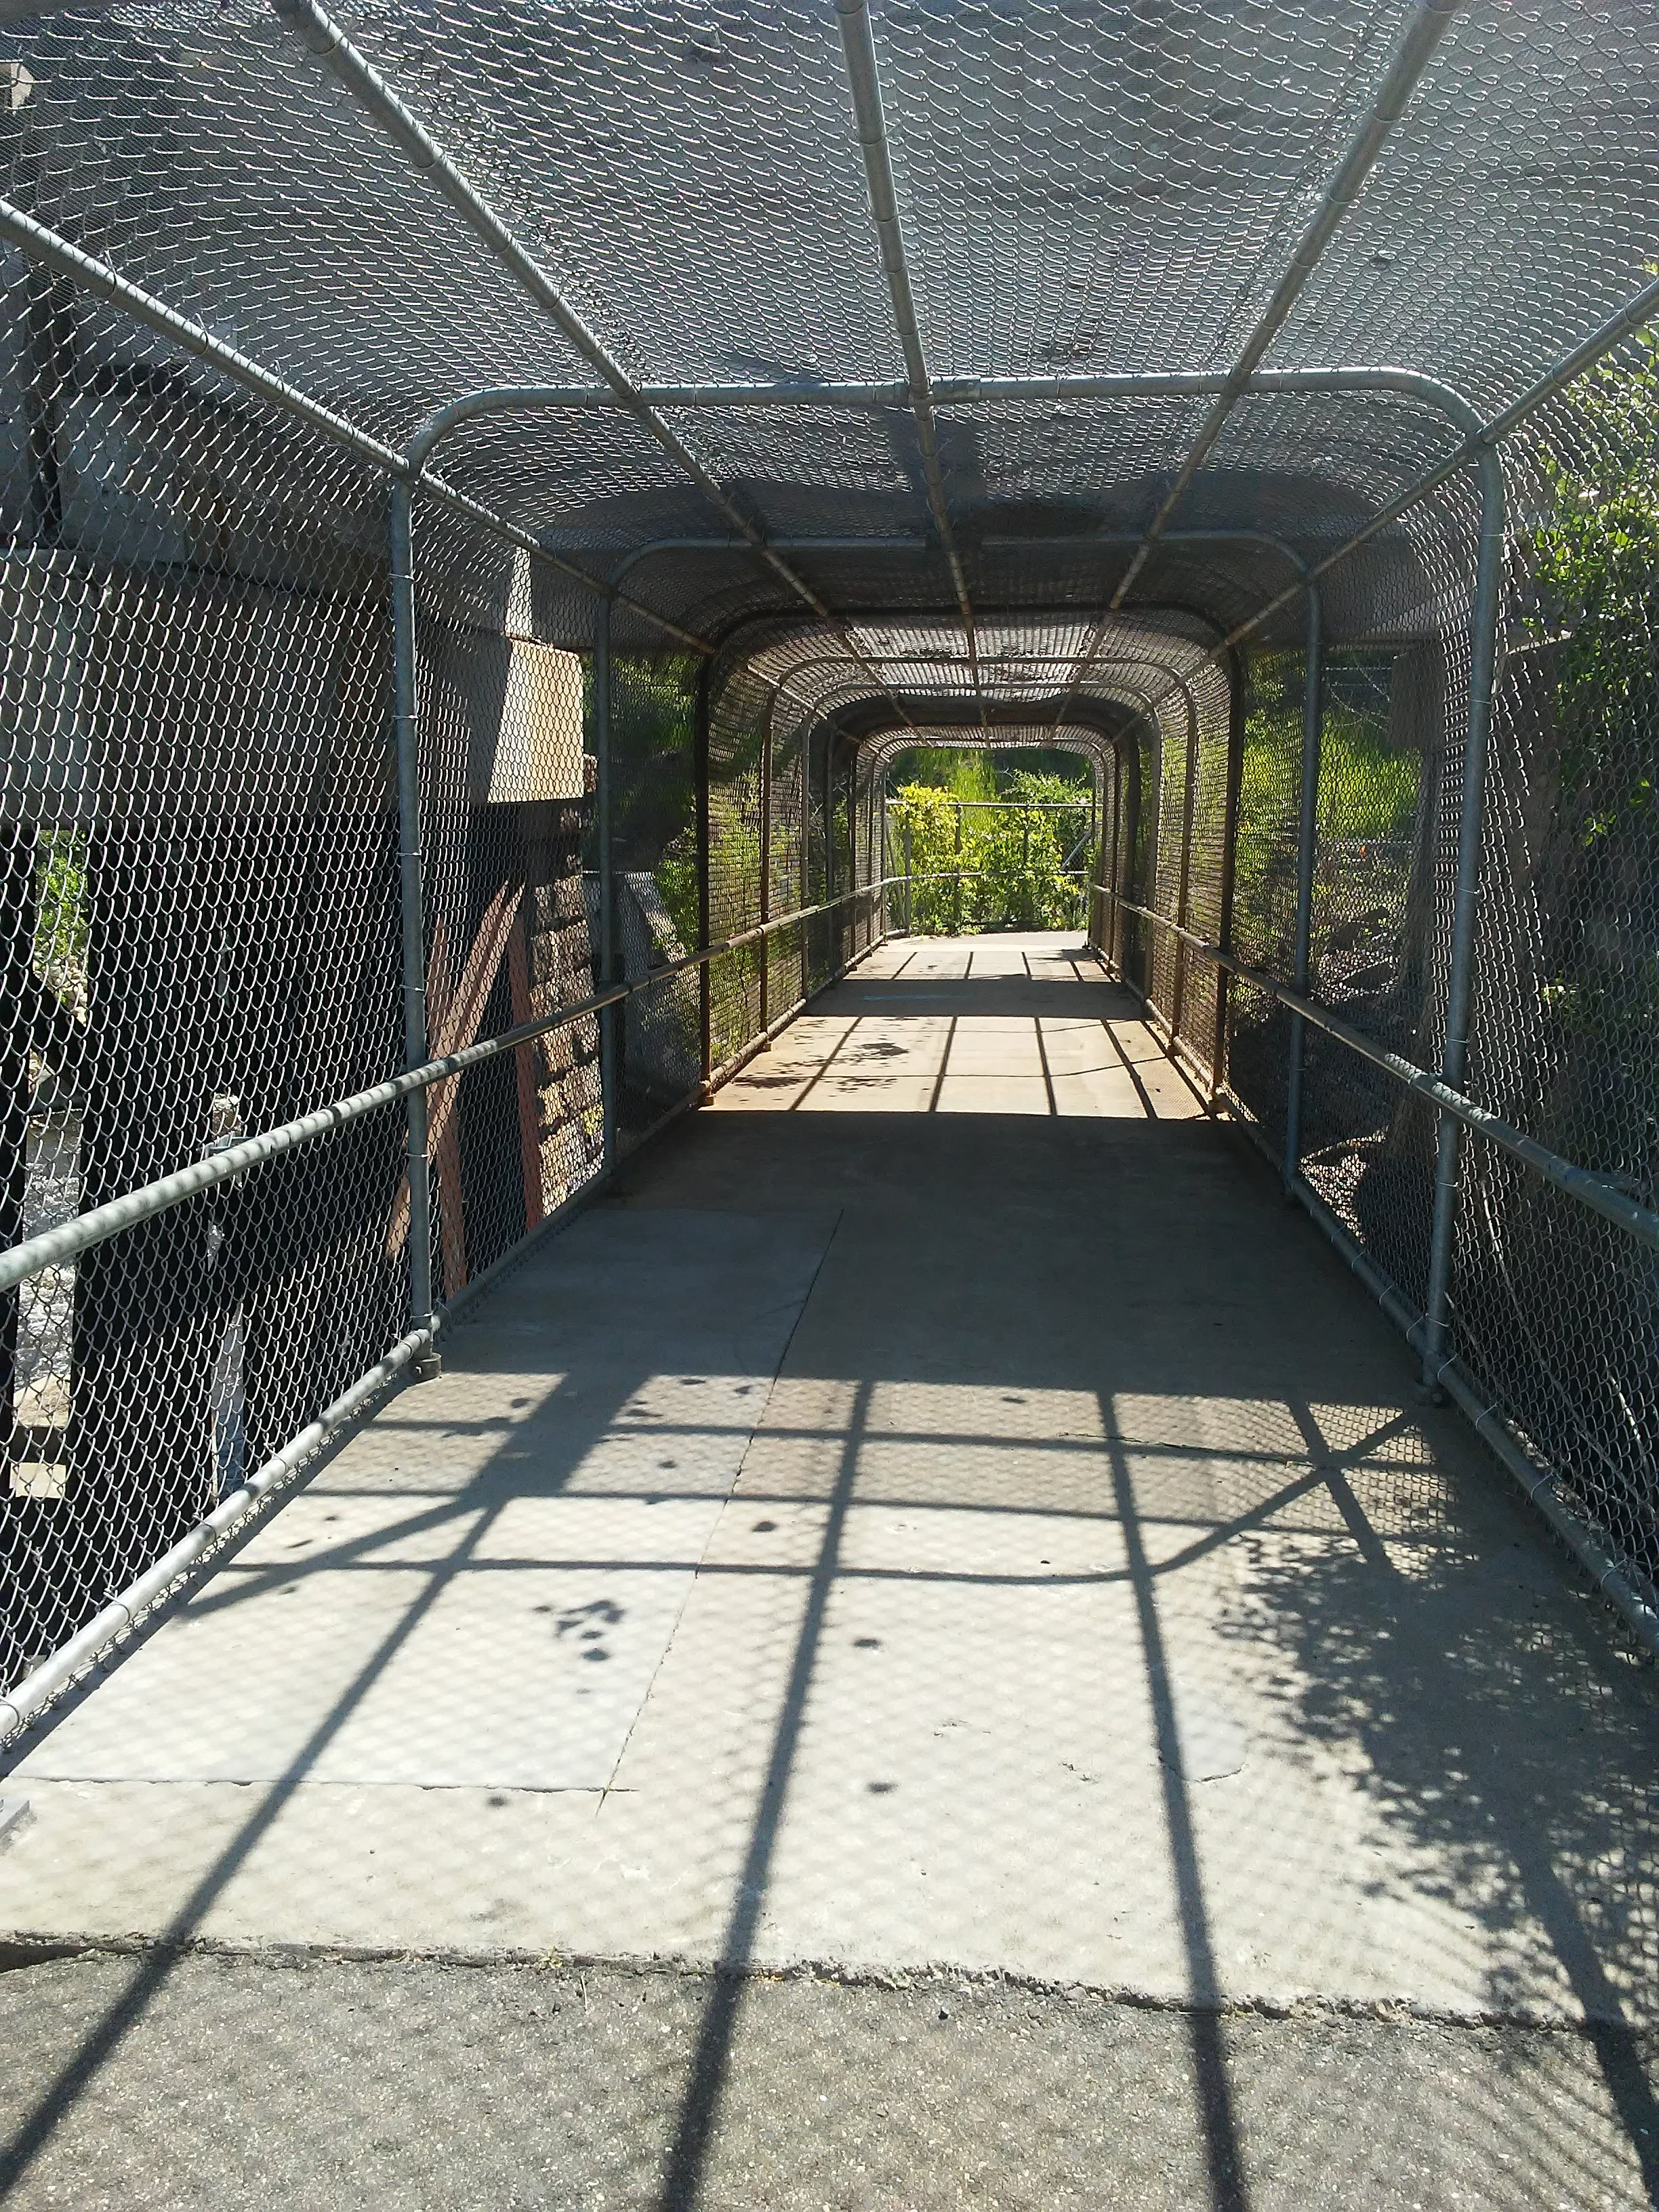 chain link fence tunnel around a bike path